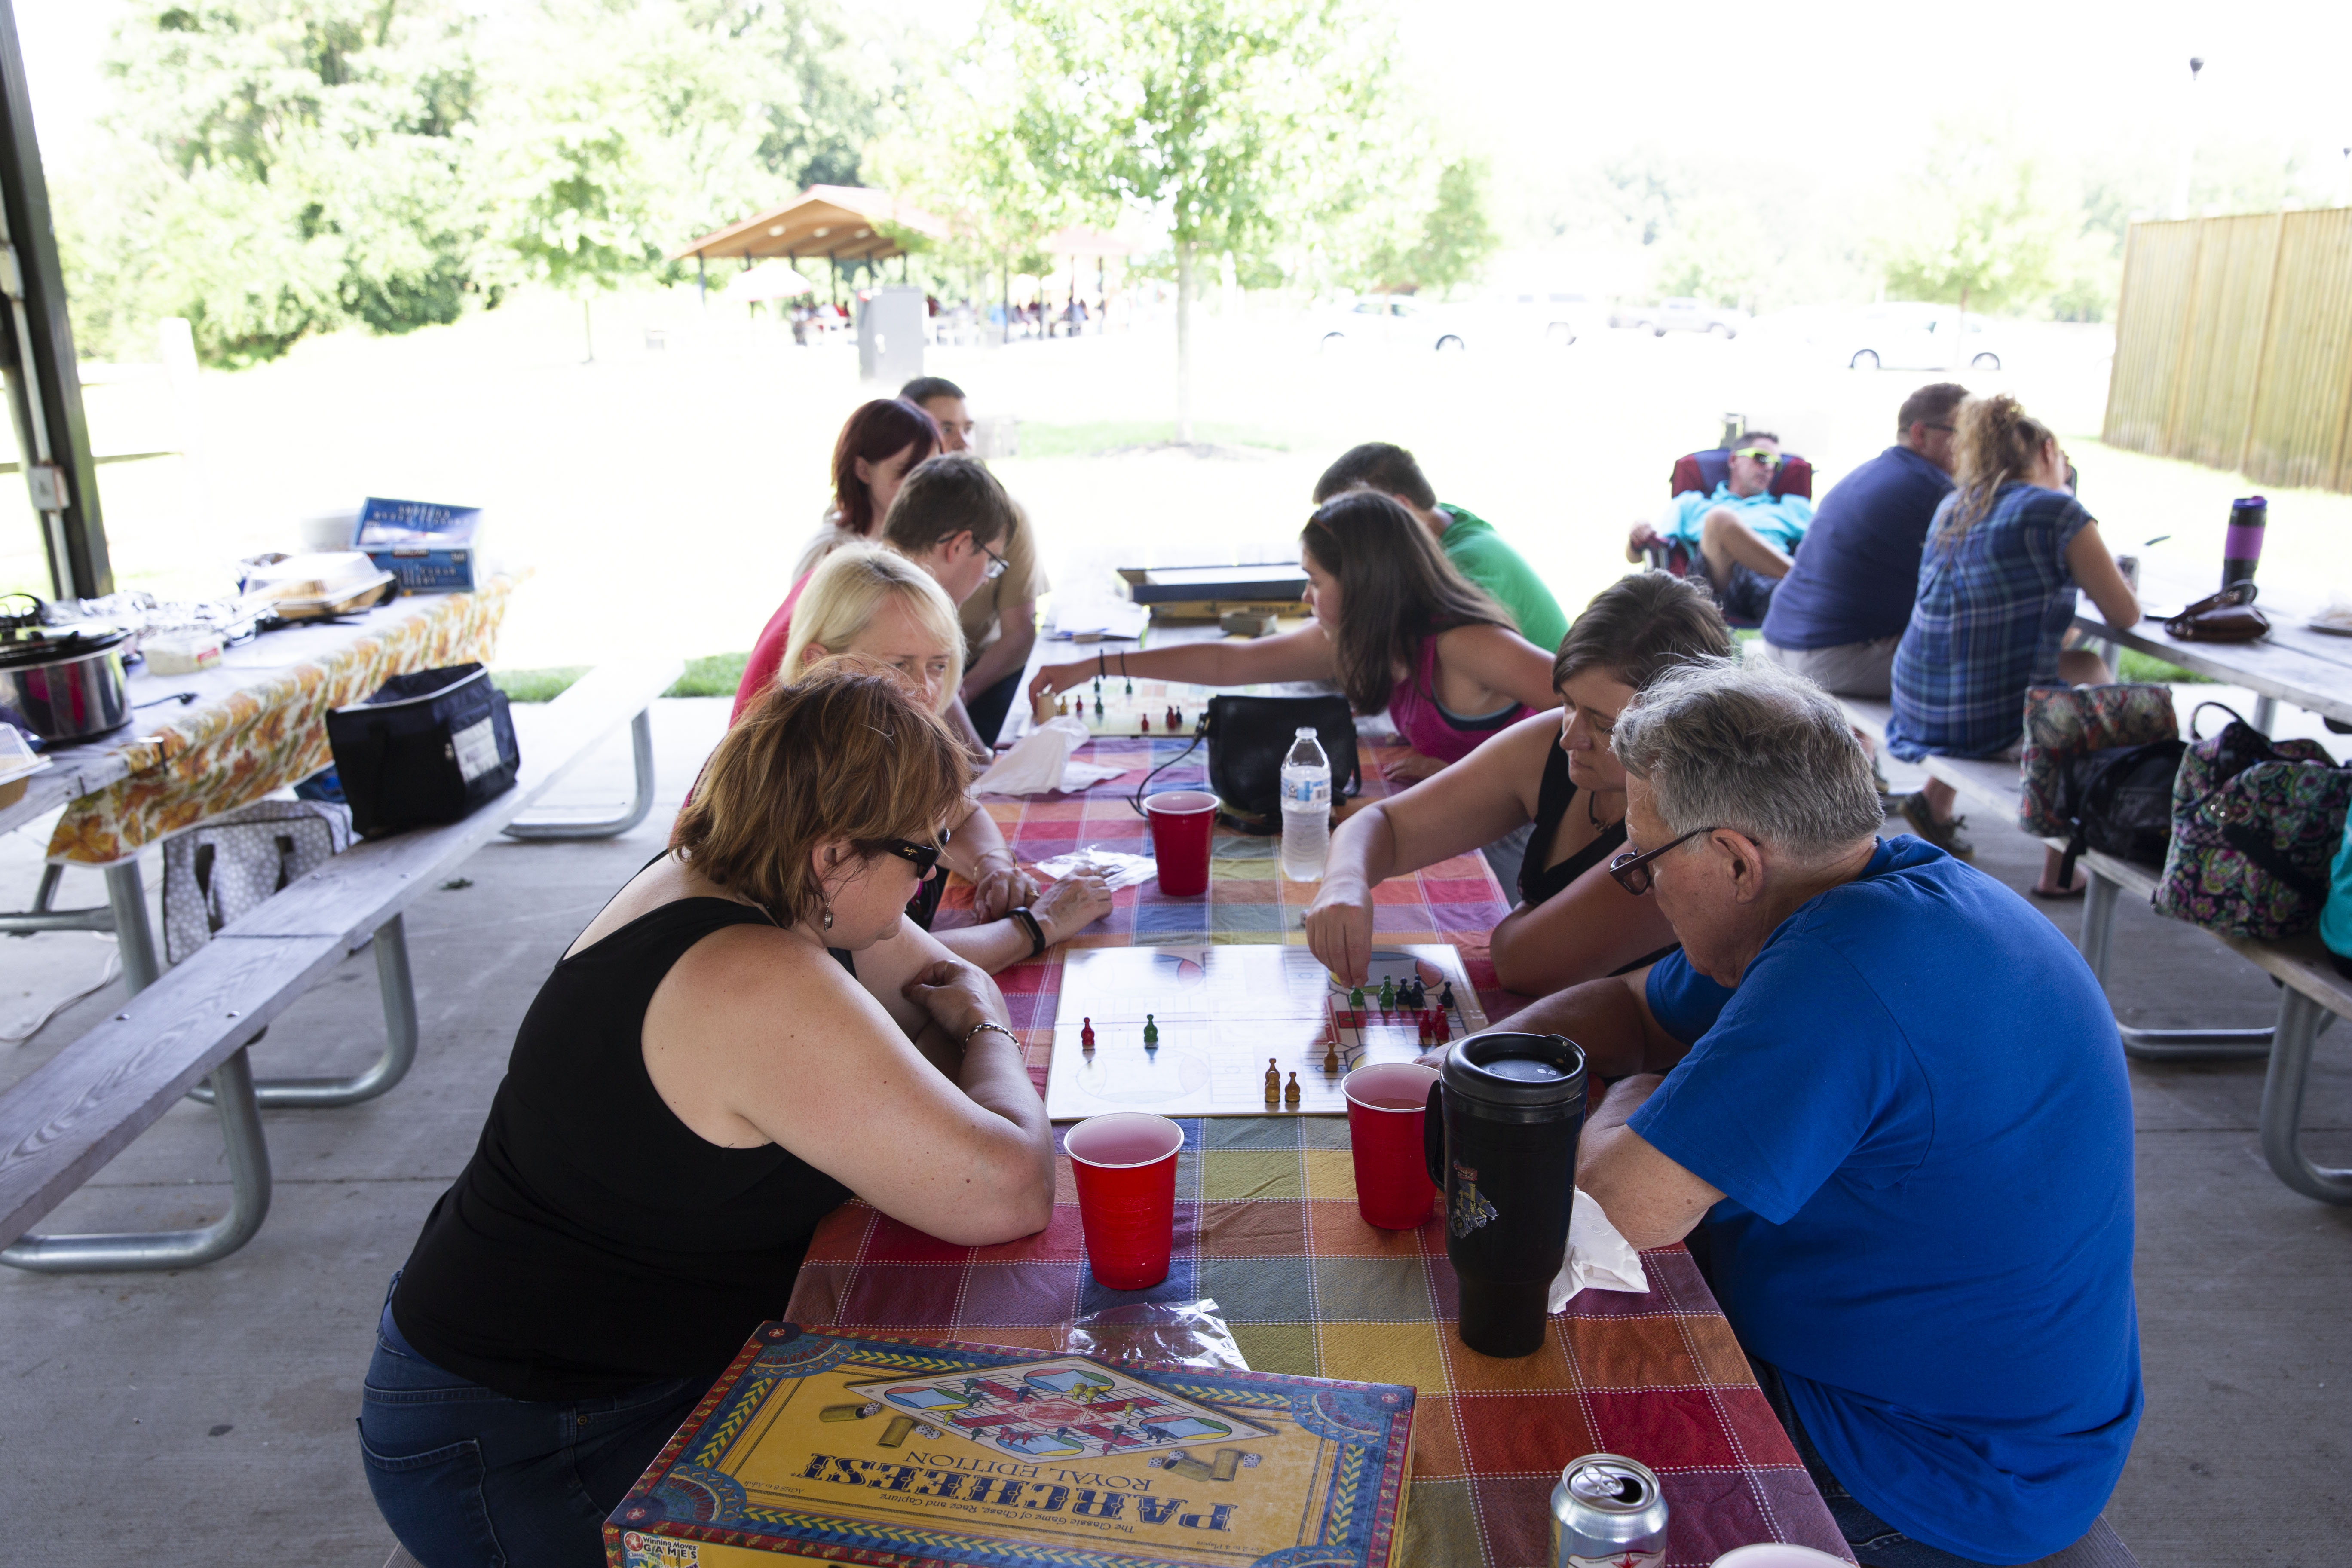 Family members playing table games at a family reunion